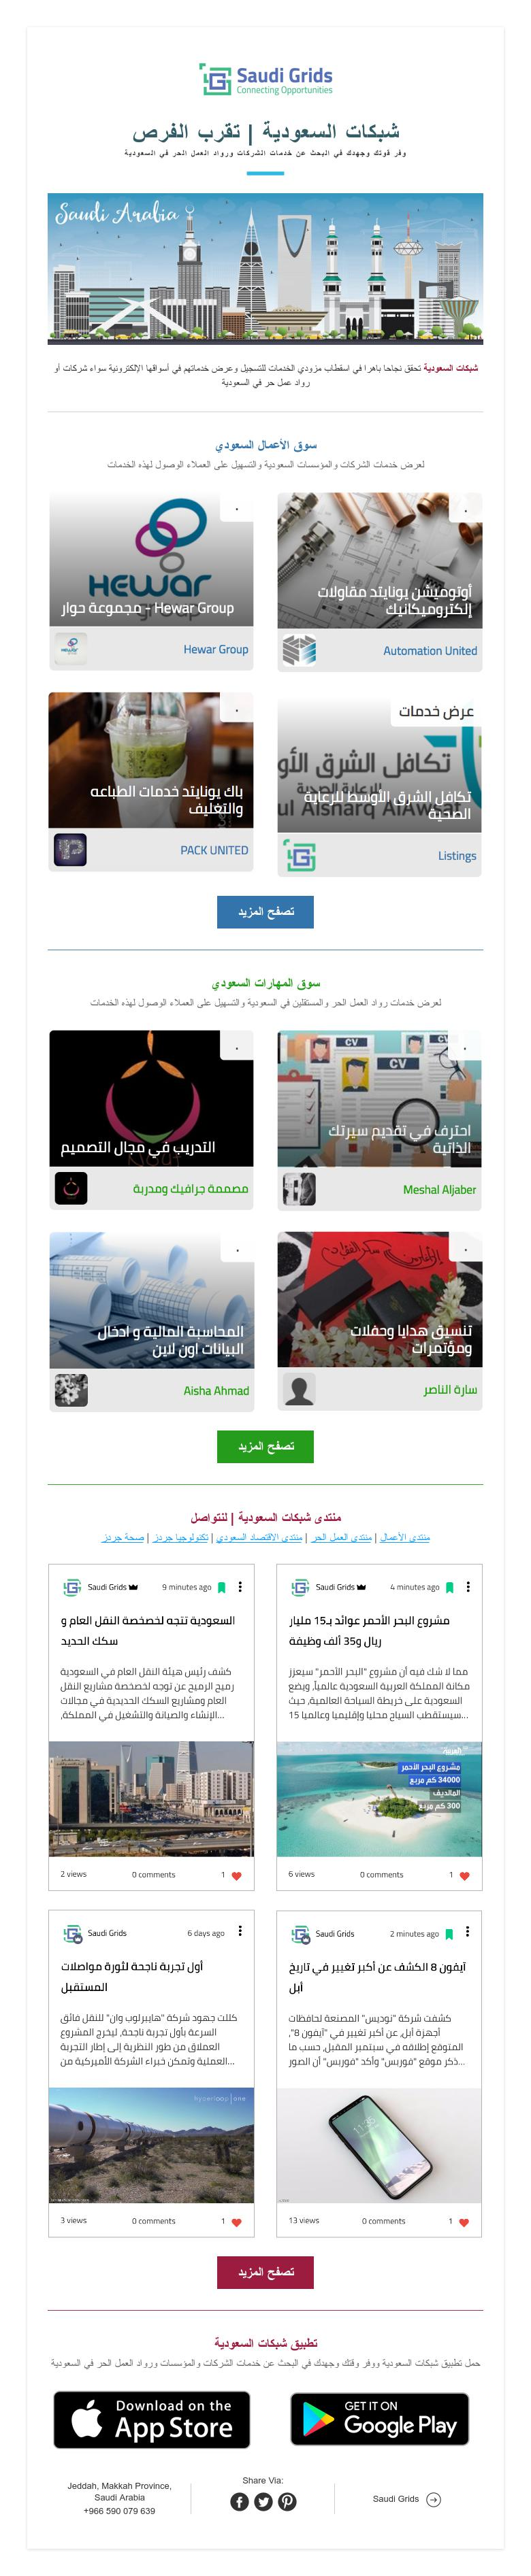 Pin By شبكات السعودية On Saudi Grids Connecting Opportunities App Store App Connection